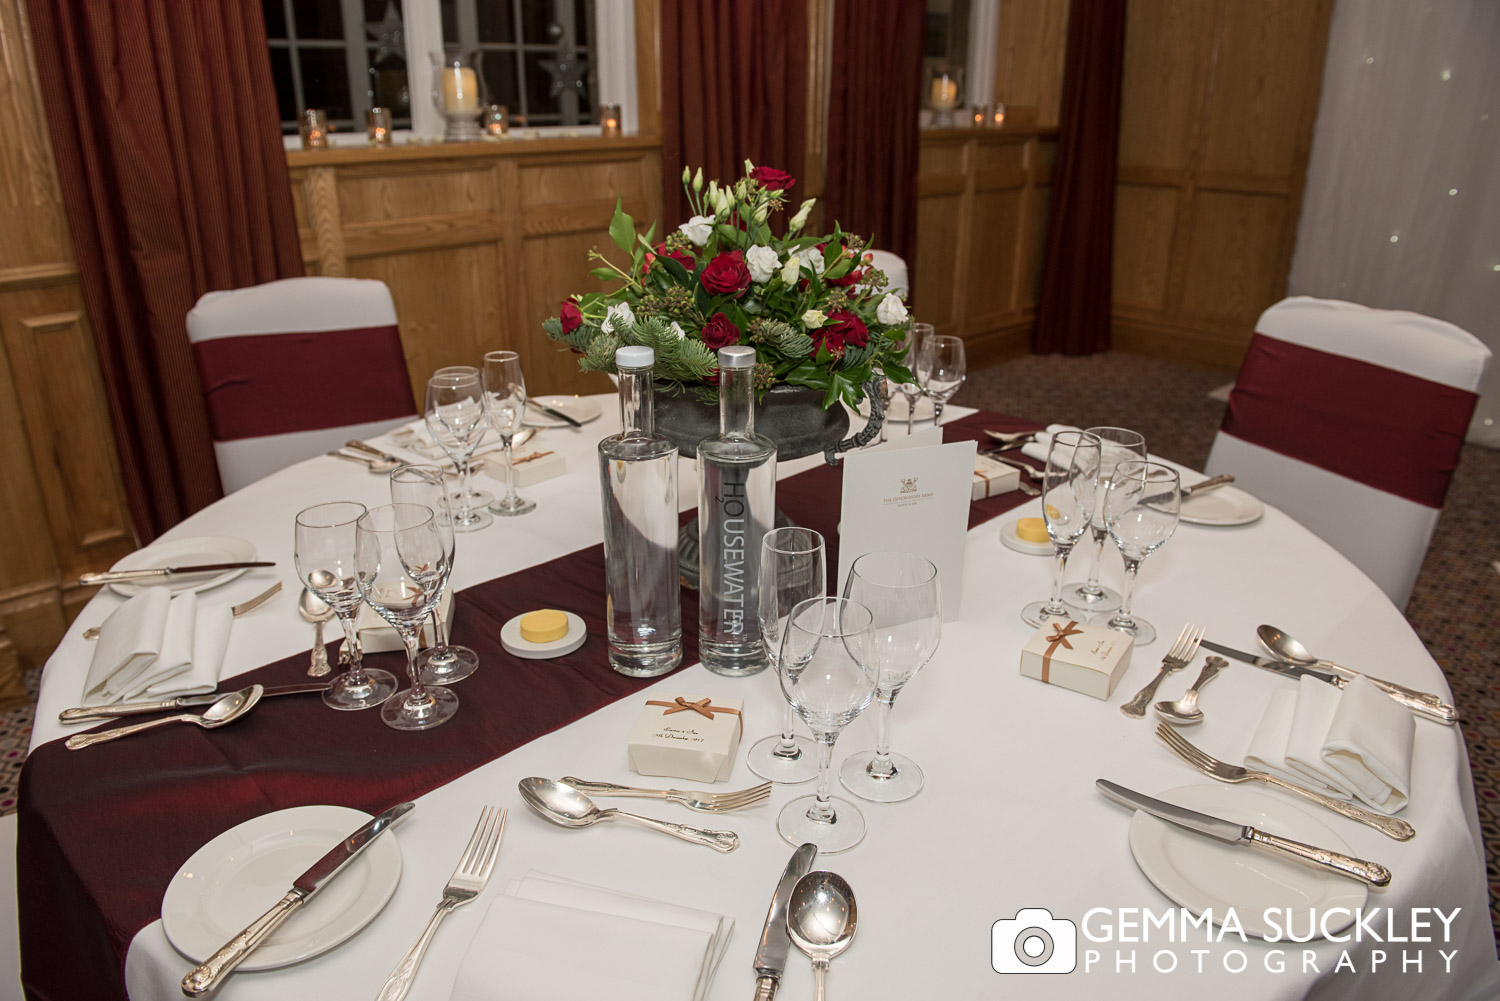 Wedding breakfast seating at the devonshire arms at bolton abbey